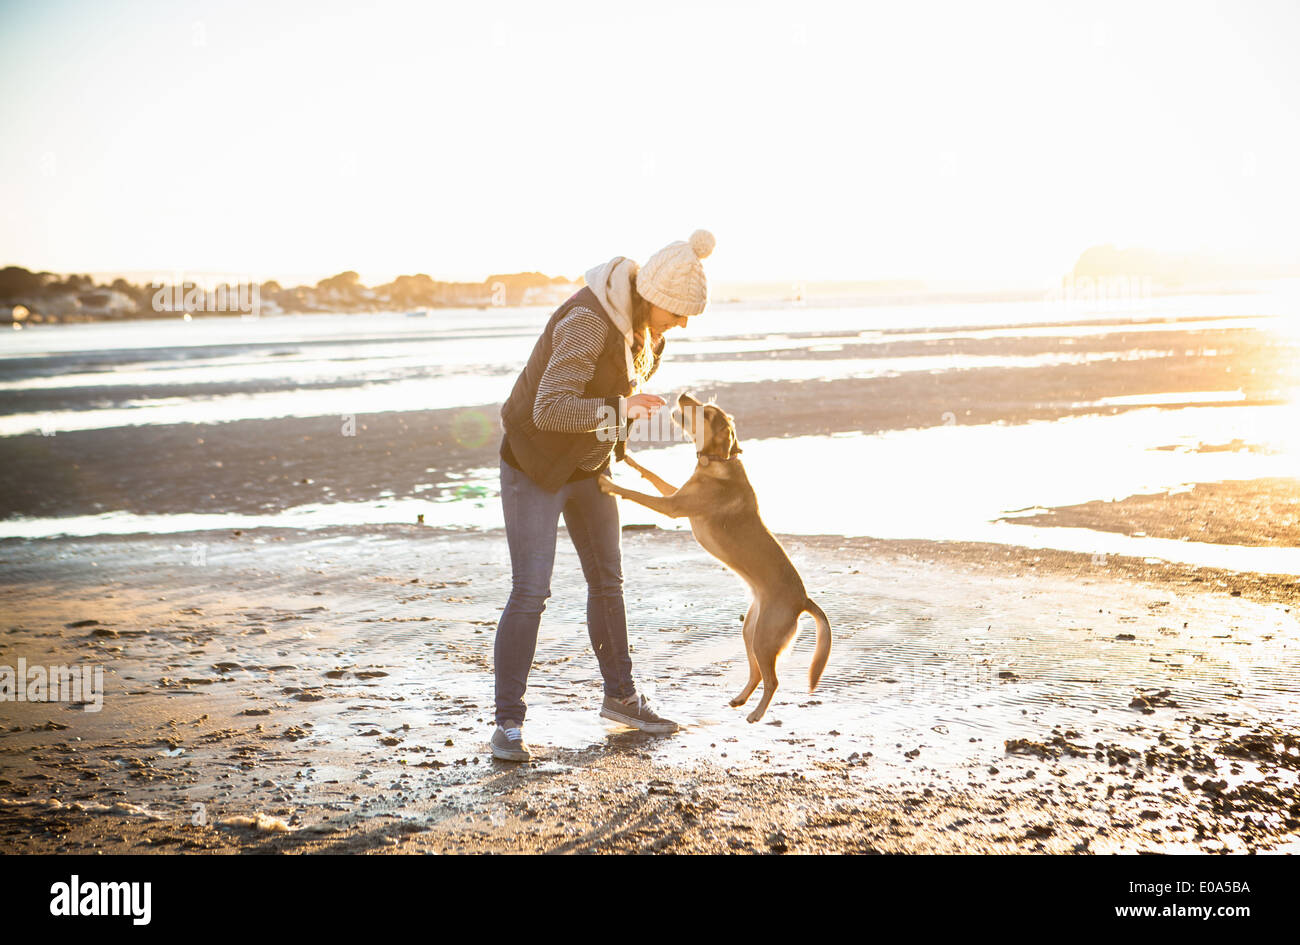 Young woman playing with her dog on the beach - Stock Image